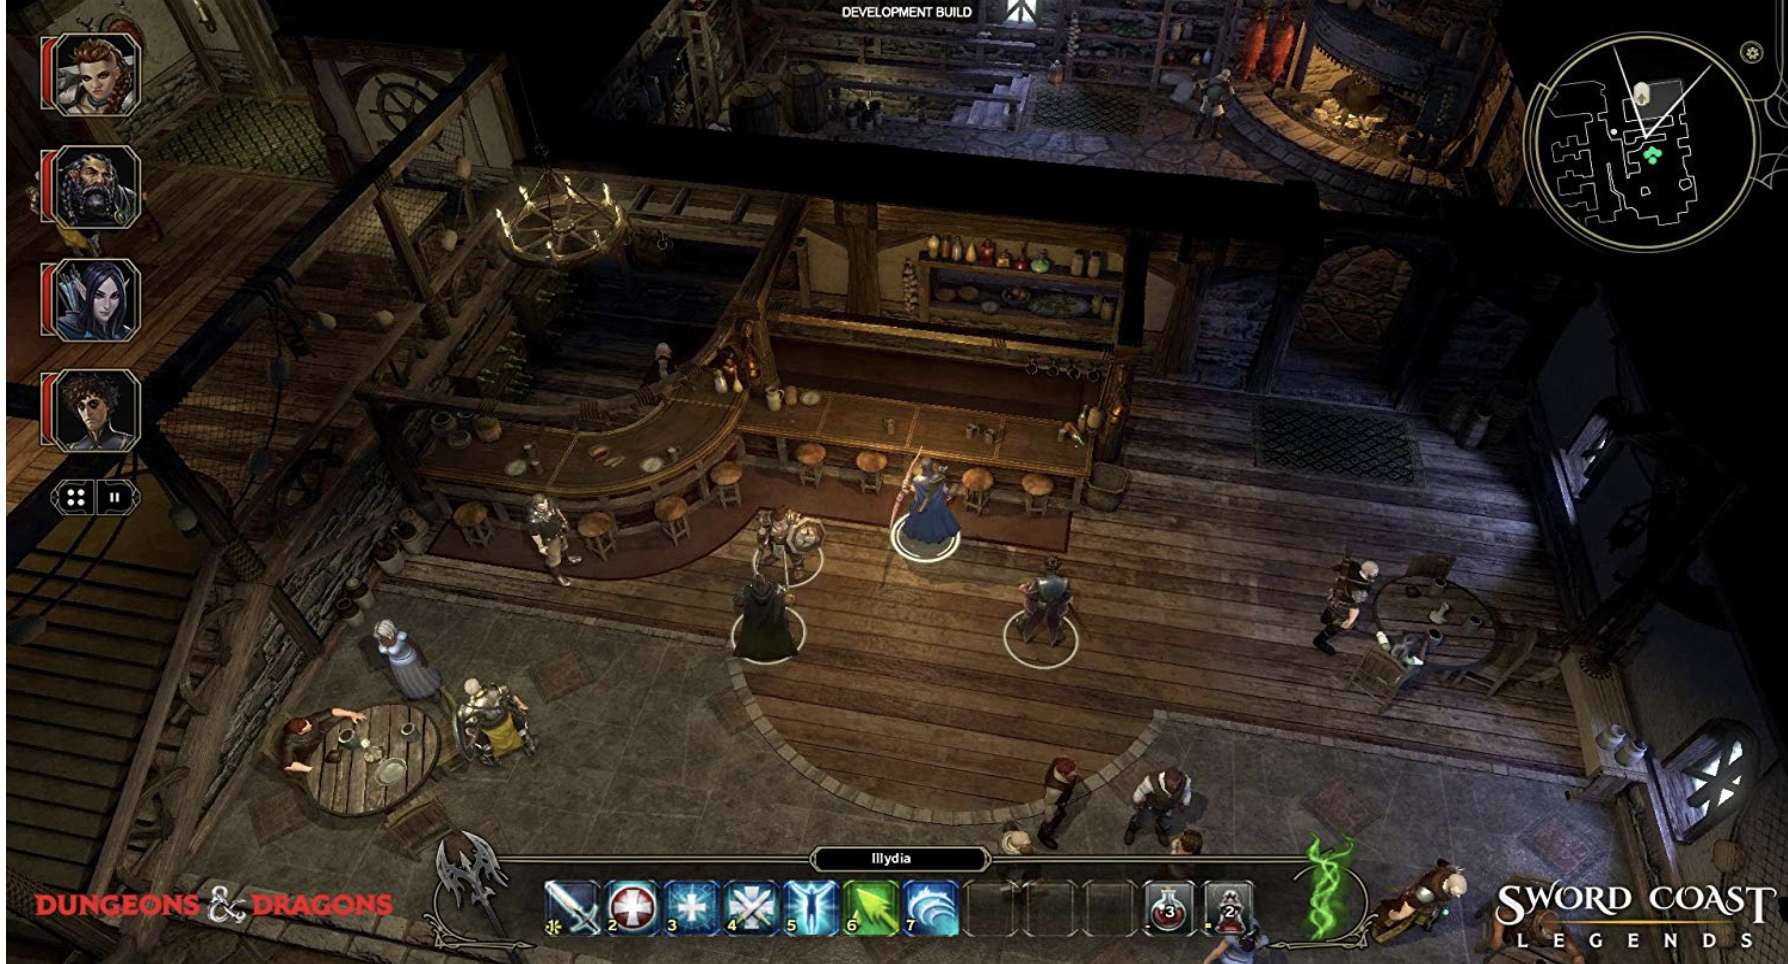 sword coast legends review-sword coast legends actual game preview (1)